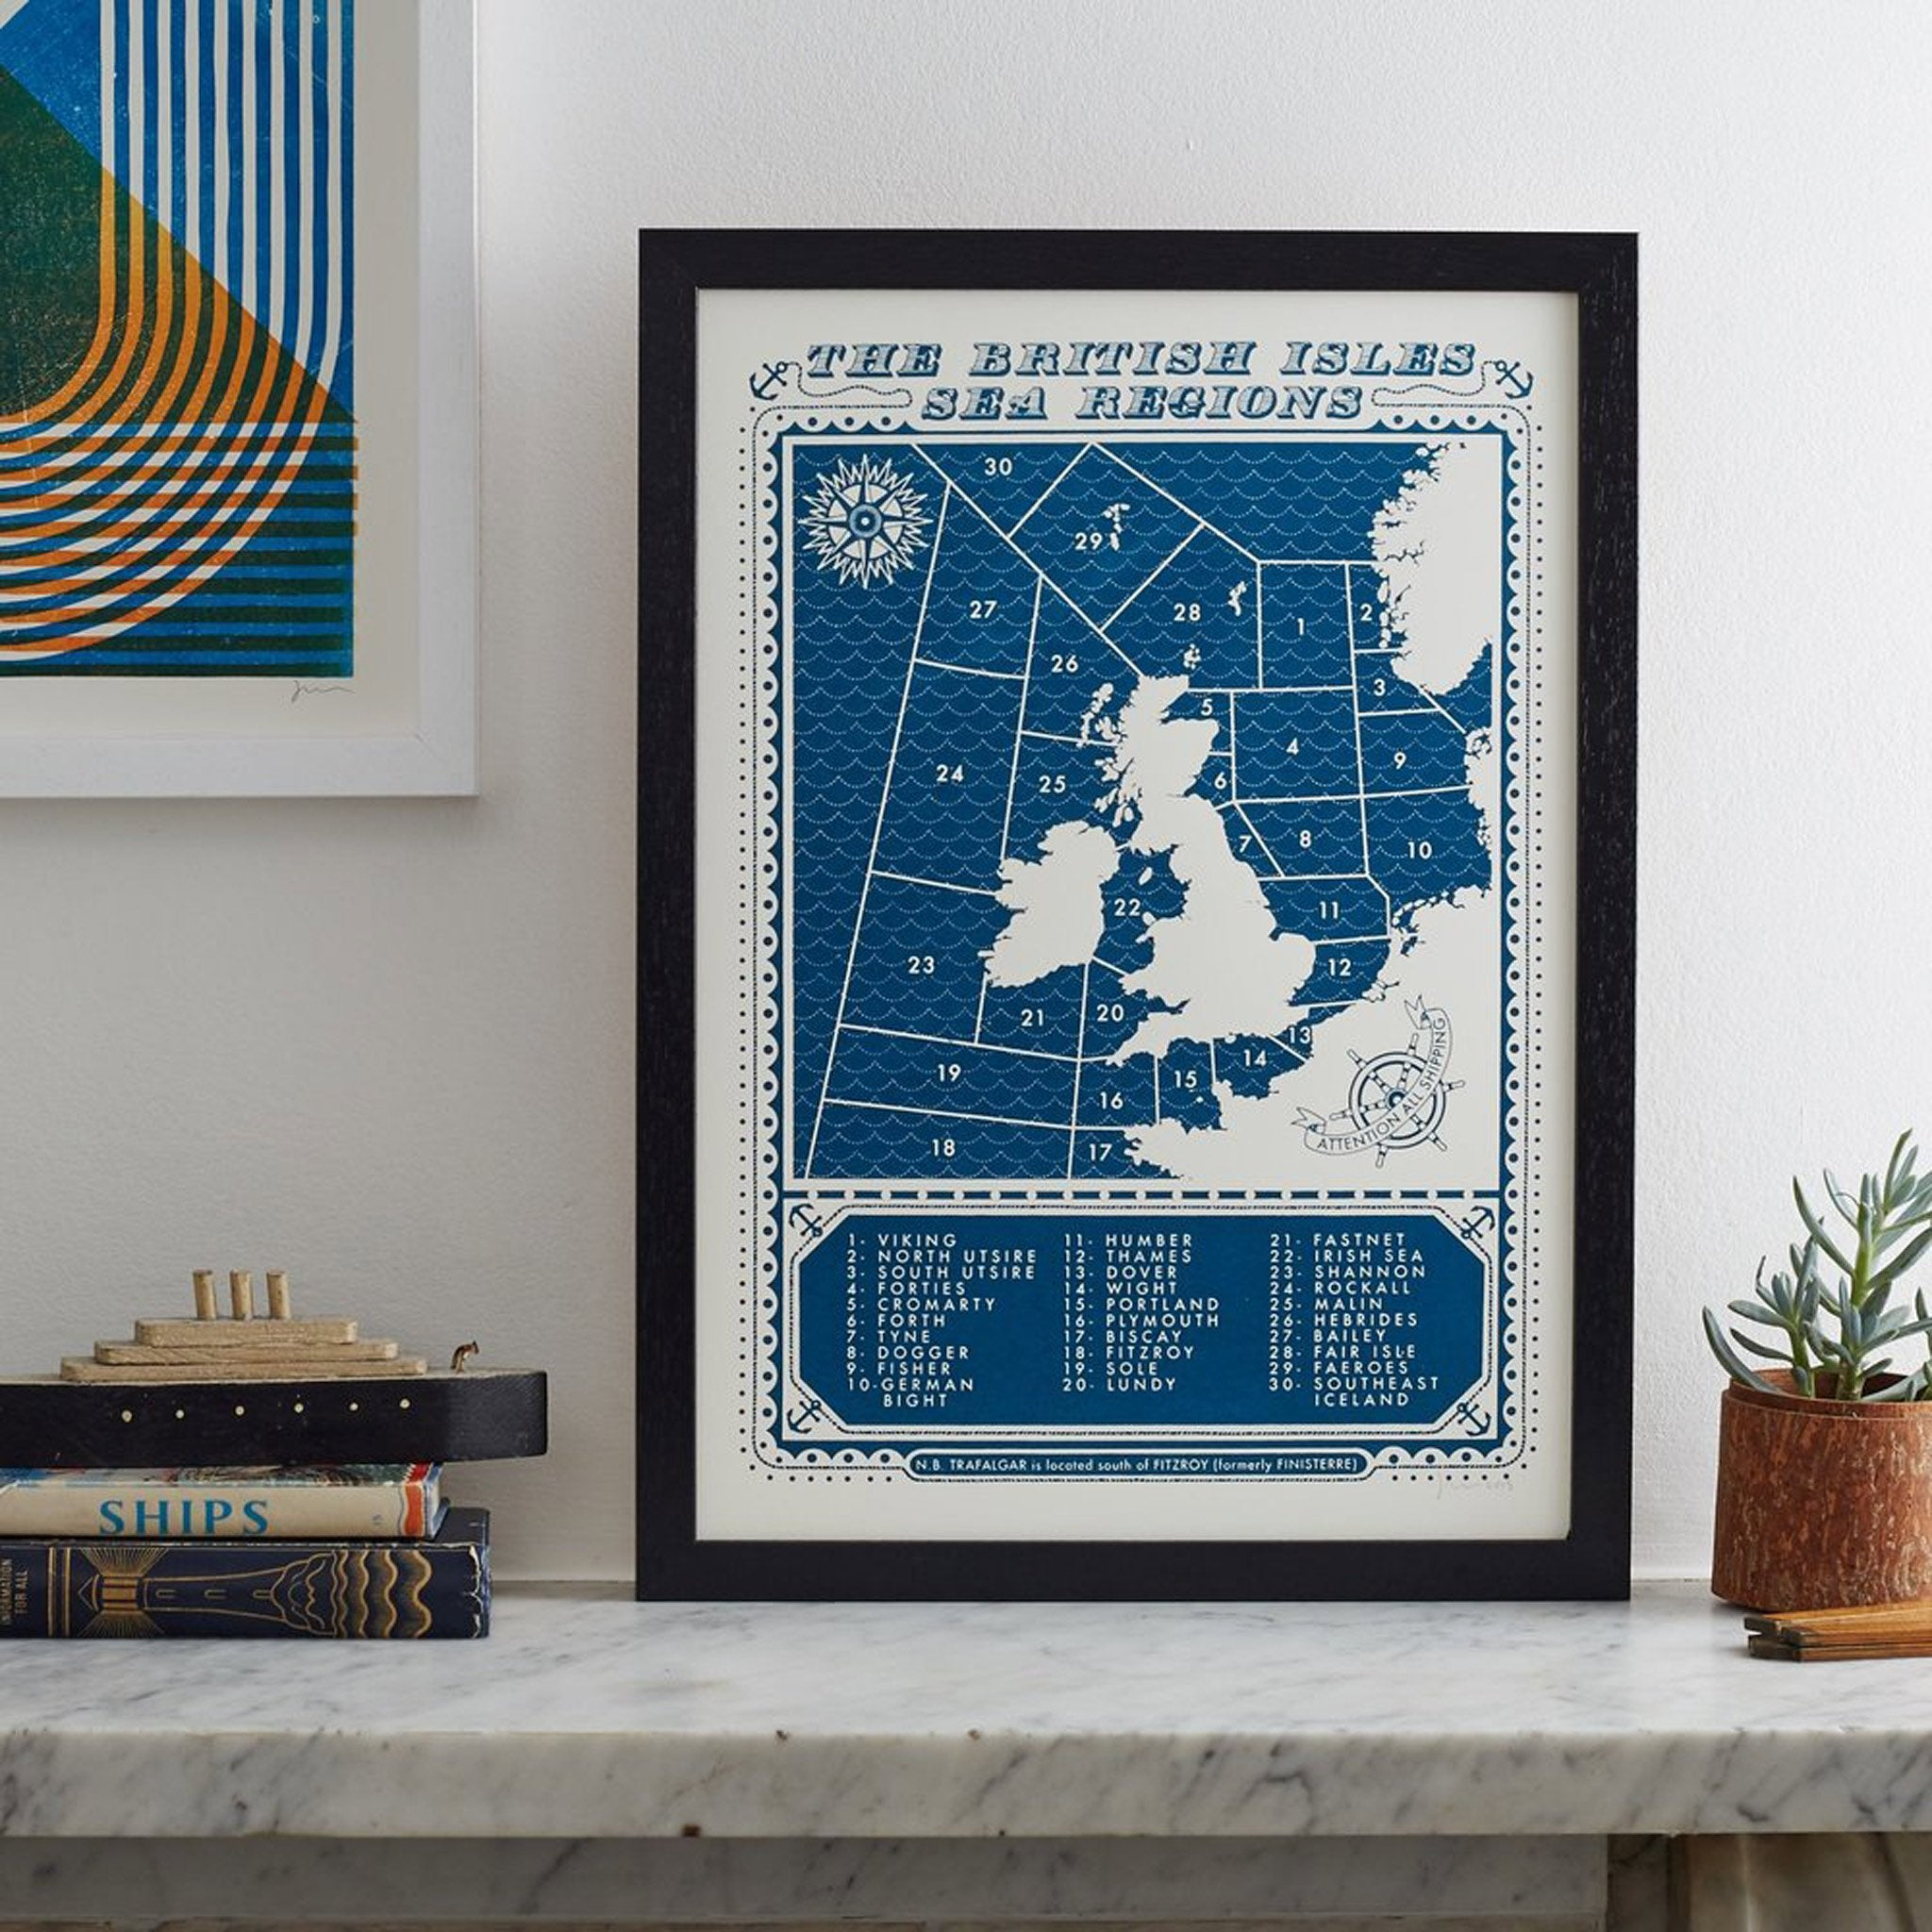 Shipping Areas Print - Arthur Beale